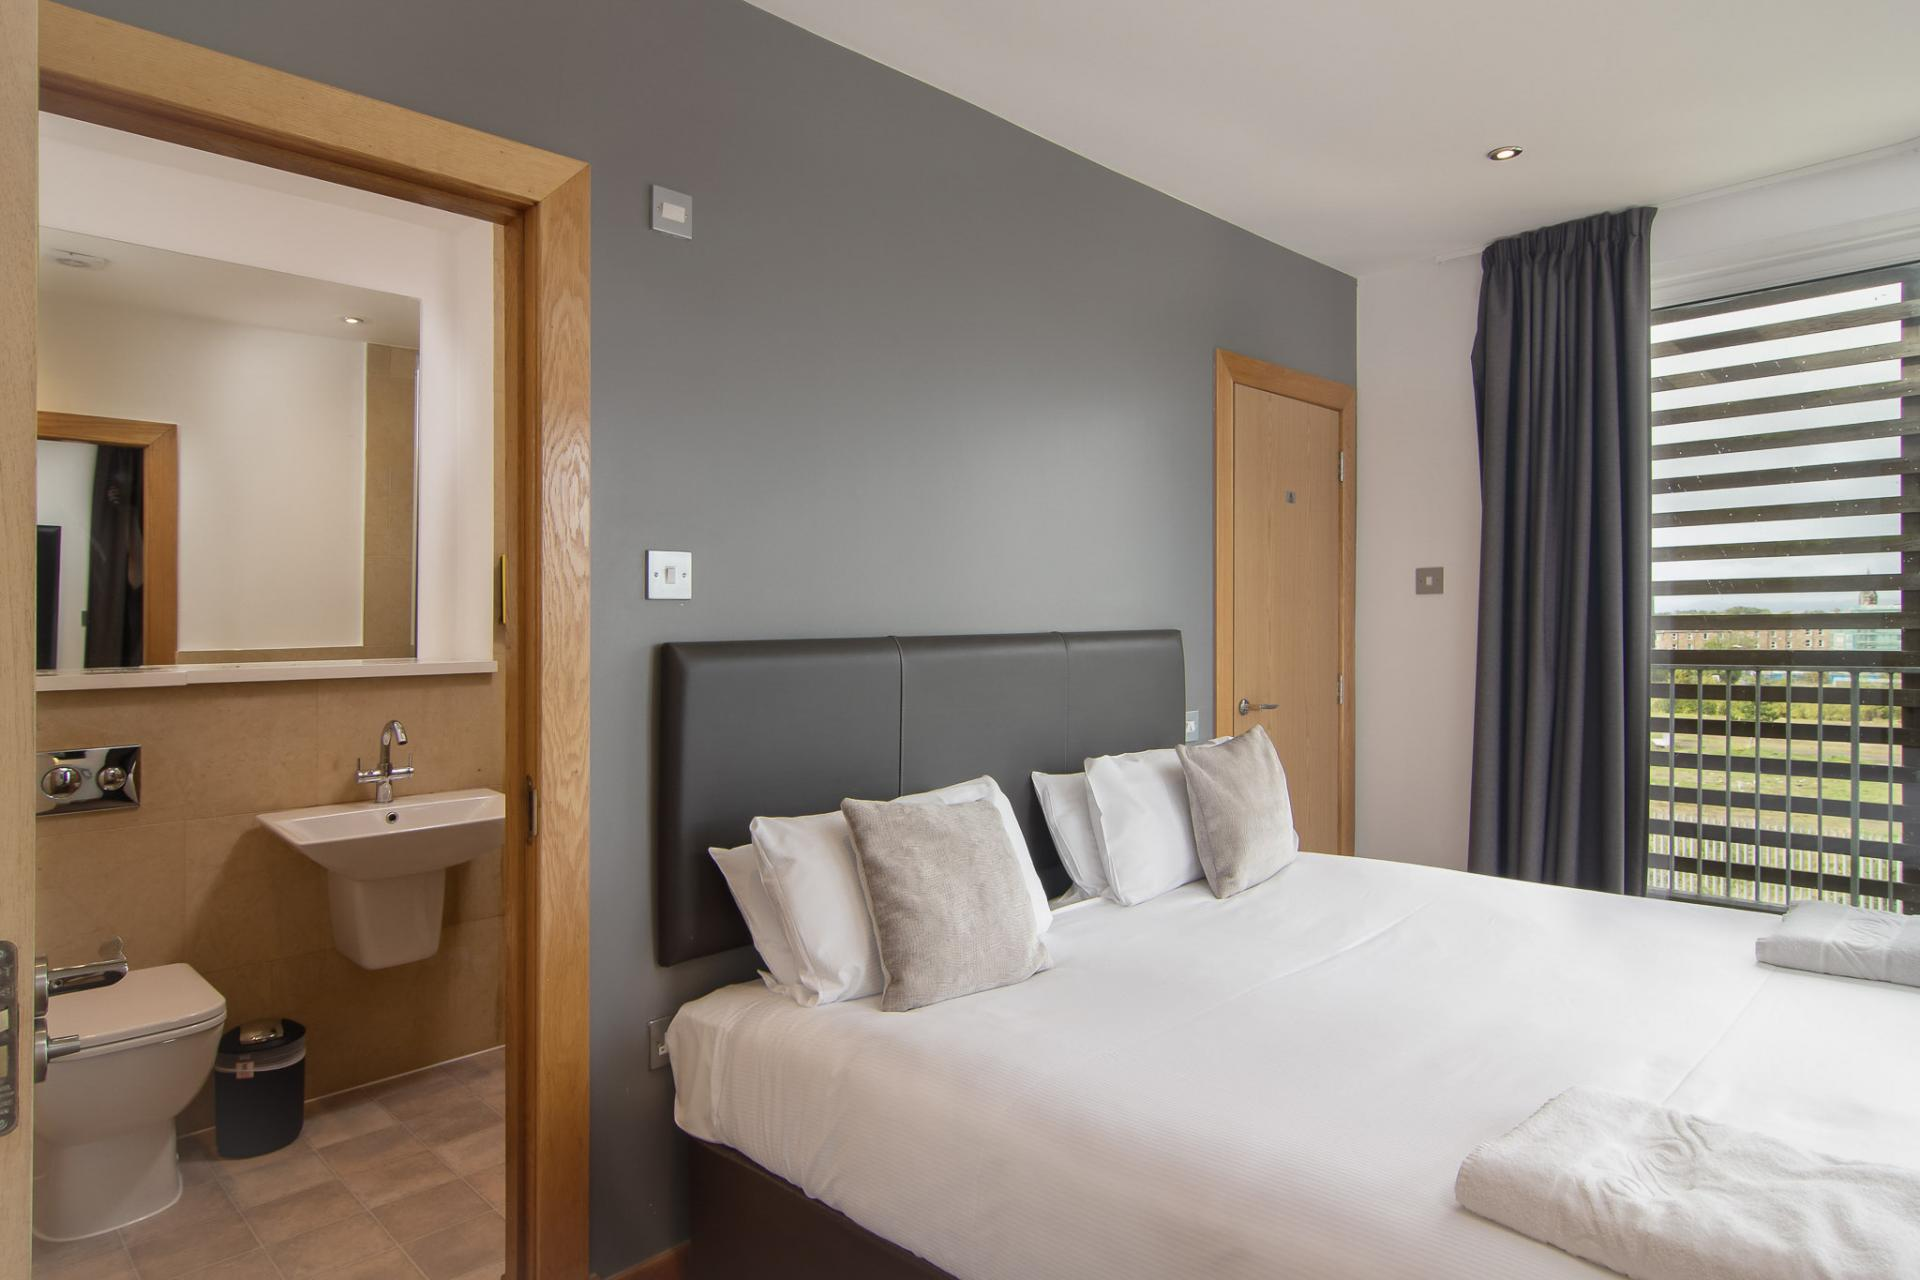 Bed at Staycity Edinburgh Leamington Wharf, Haymarket, Edinburgh - Citybase Apartments